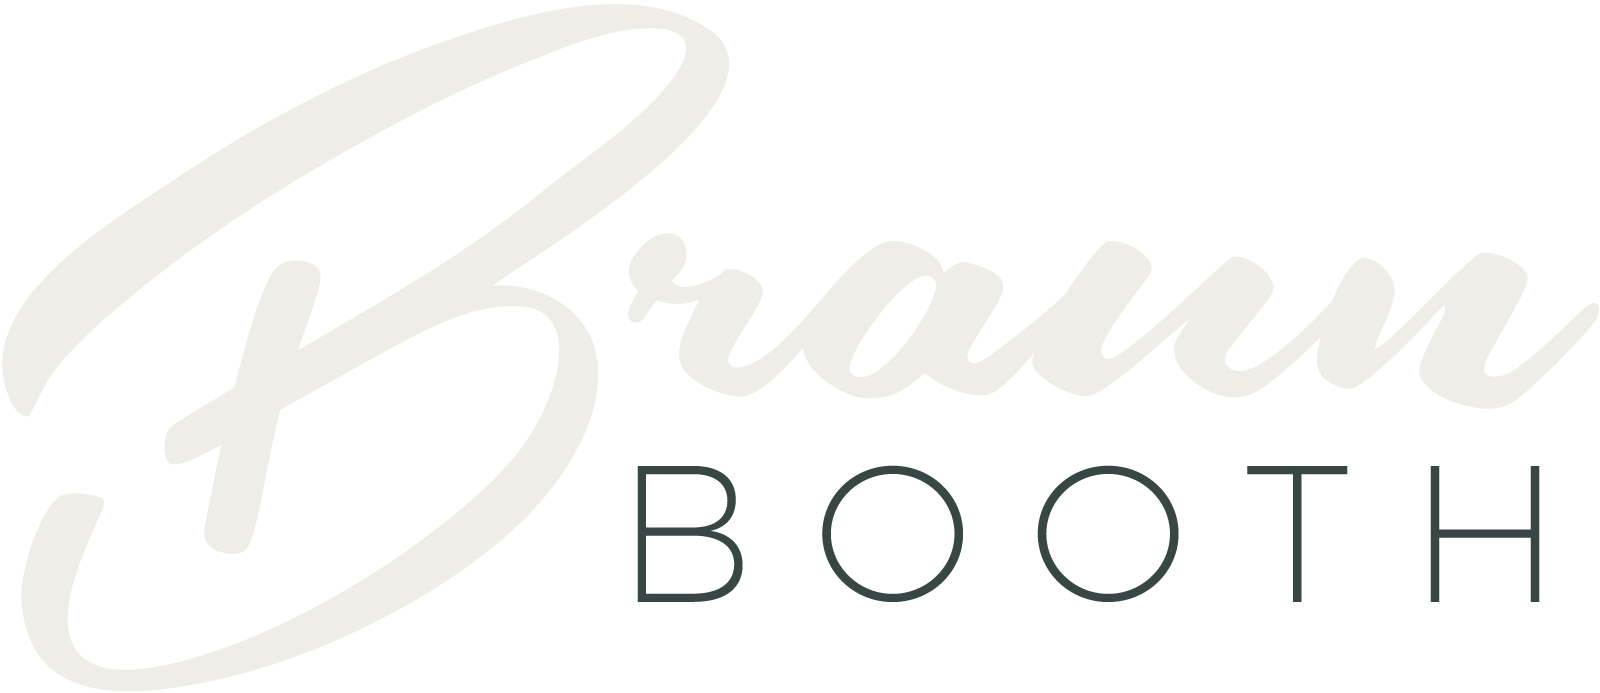 Braun Booth, the most stylish selfie booth in Ohio.